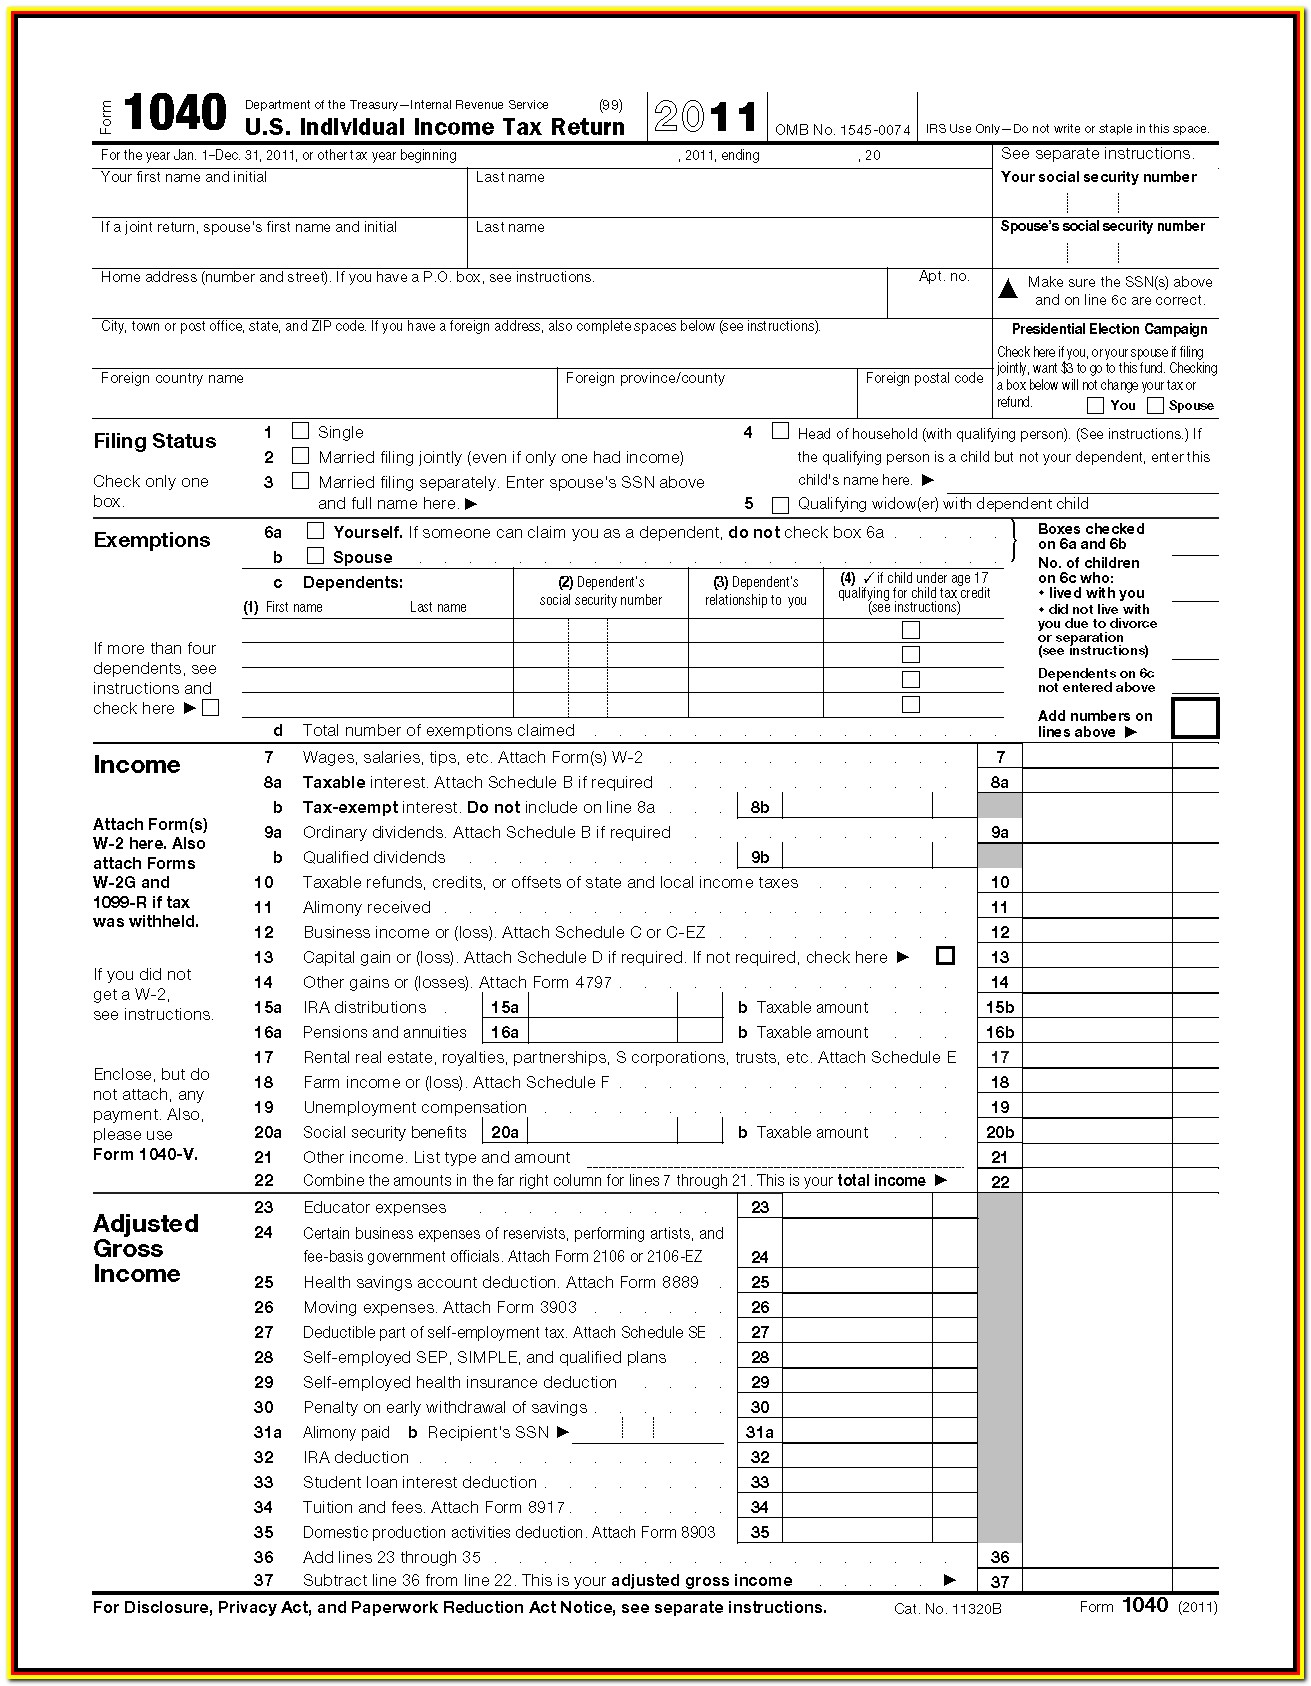 Irs Tax Forms 1040 Instructions